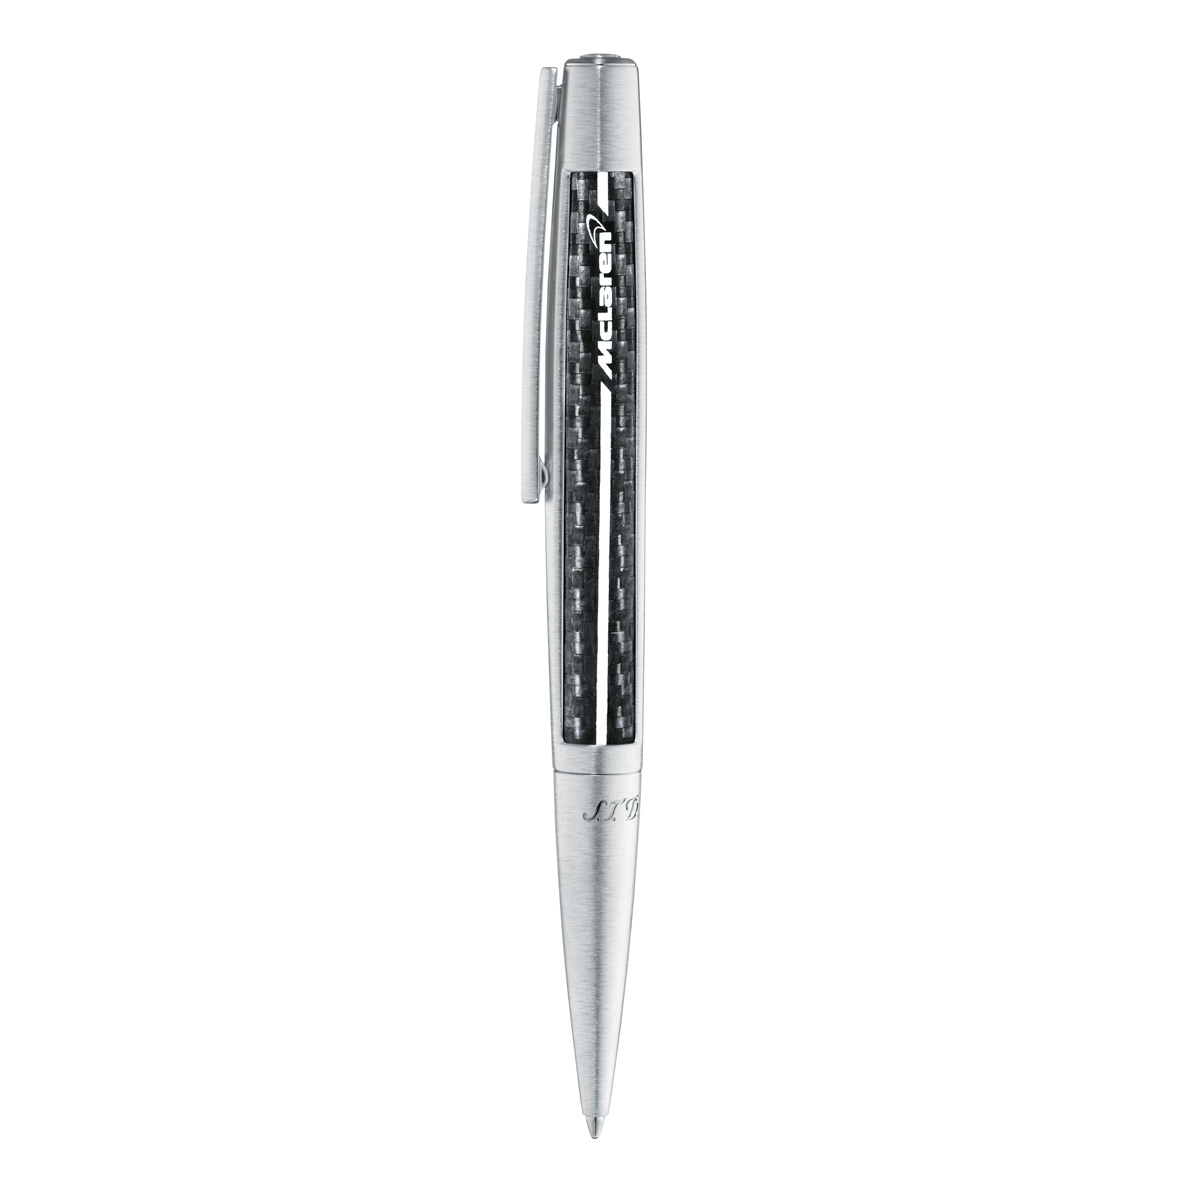 ST Dupont McLaren Defi Carbon Finish Ballpoint Pen - Limited Edition